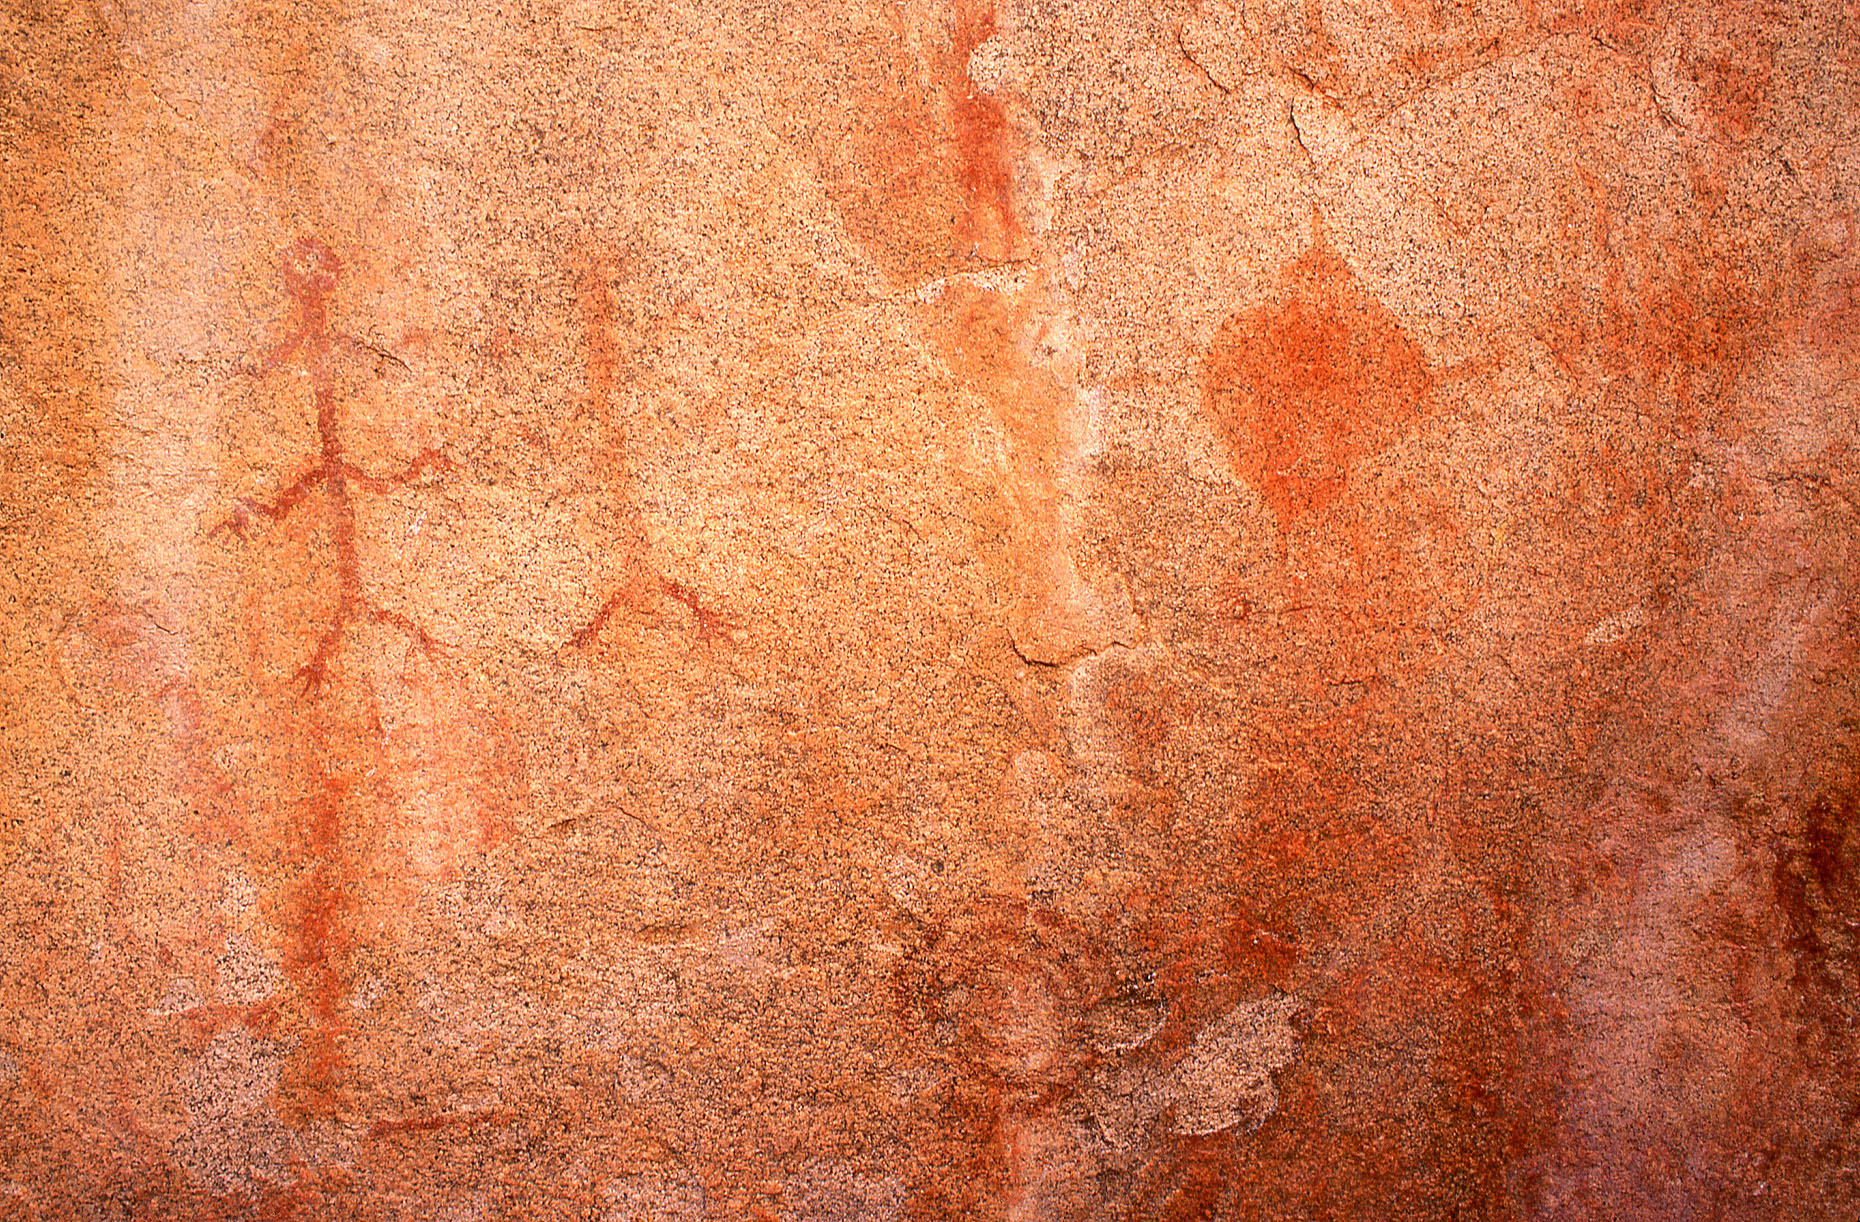 Pictographs, John Annerino, Cochise Stronghold National Register of Historic Places, AZ, ancestral Mogollon rock art